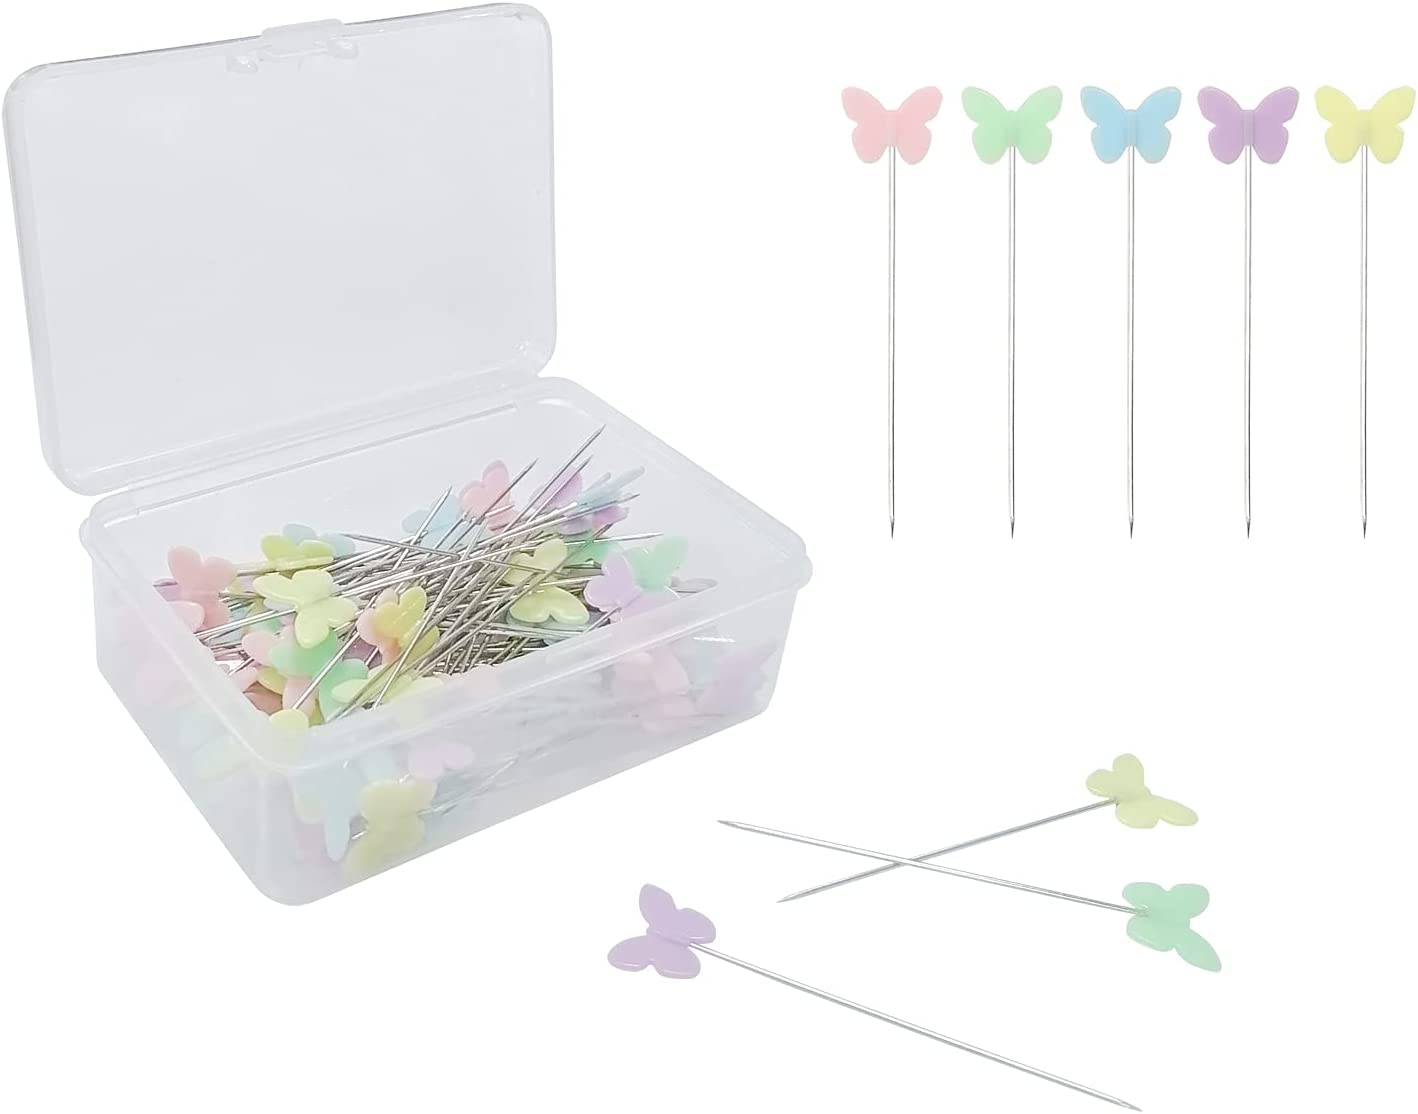 100Pack Butterfly Head Pins Fixed San Antonio Mall store Positioning Sewing Nee Marker